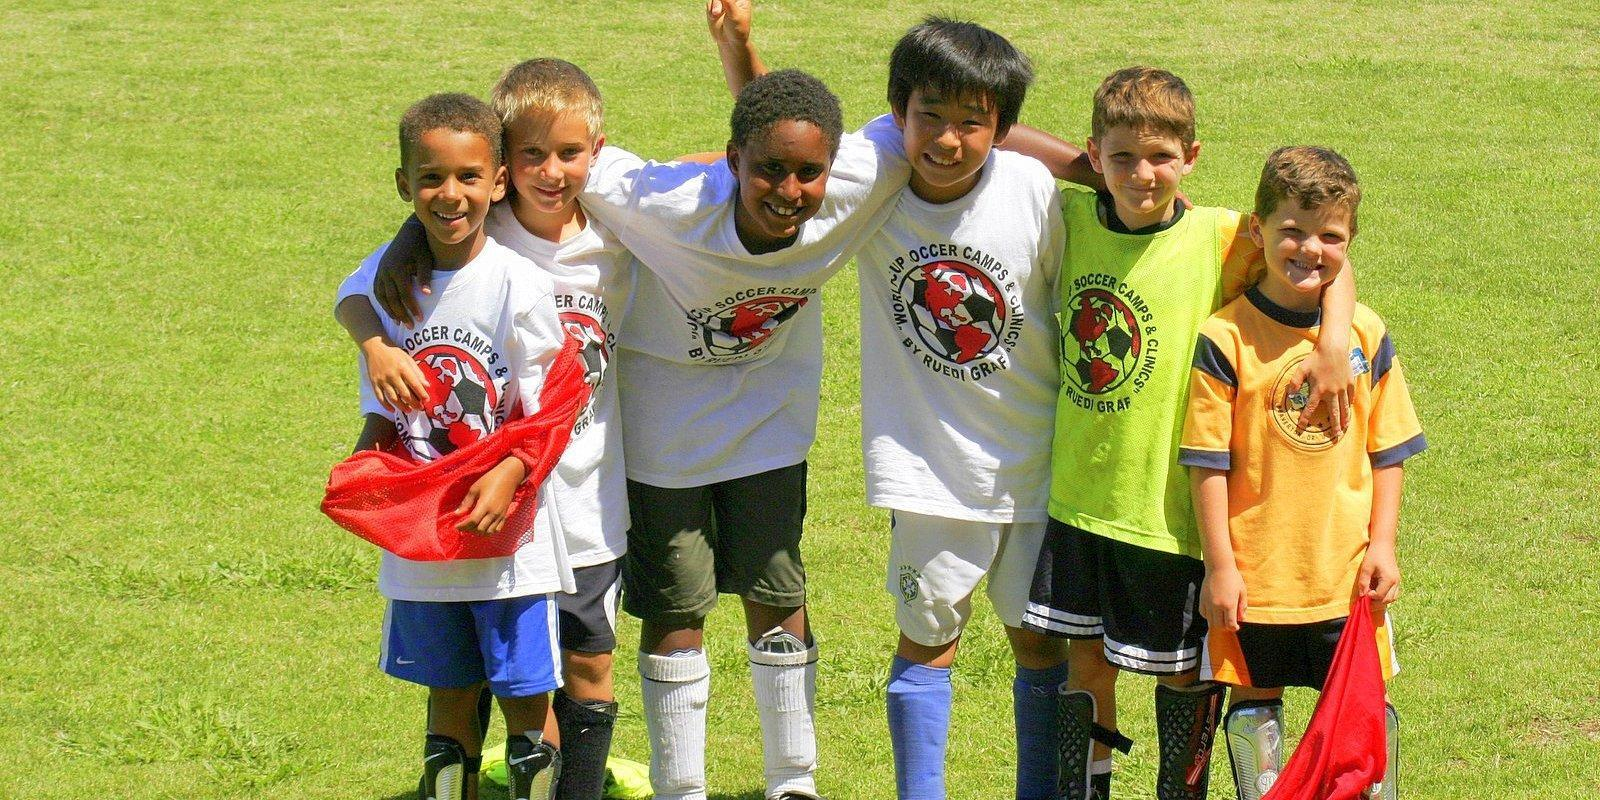 World Cup Soccer Camps And Soccer Clinics